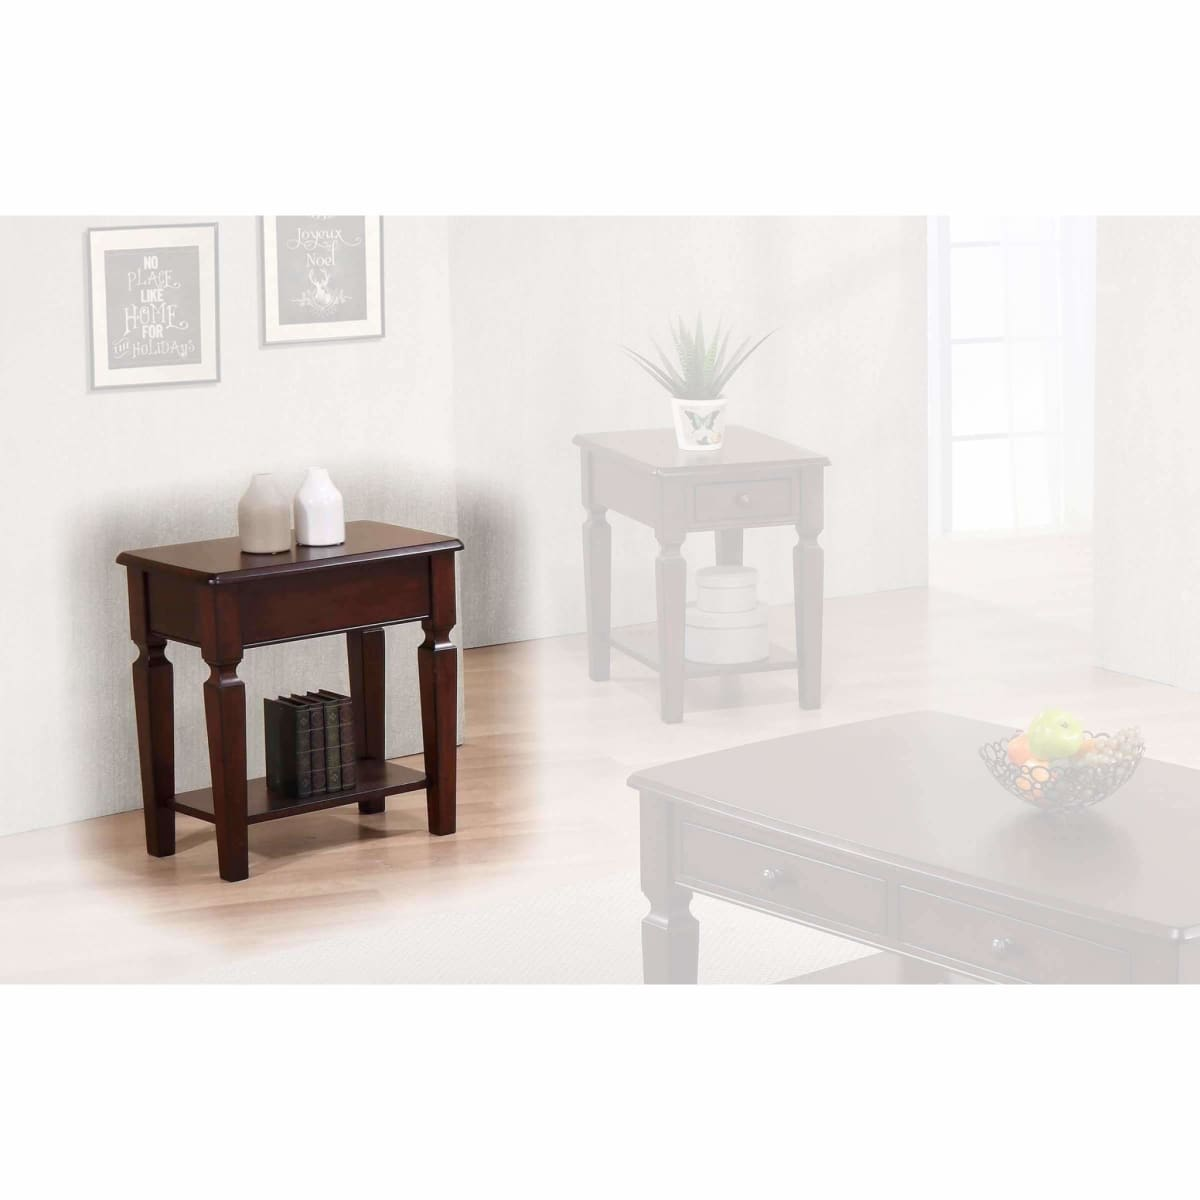 Santa Fe 14 Lamp Table - accent tables